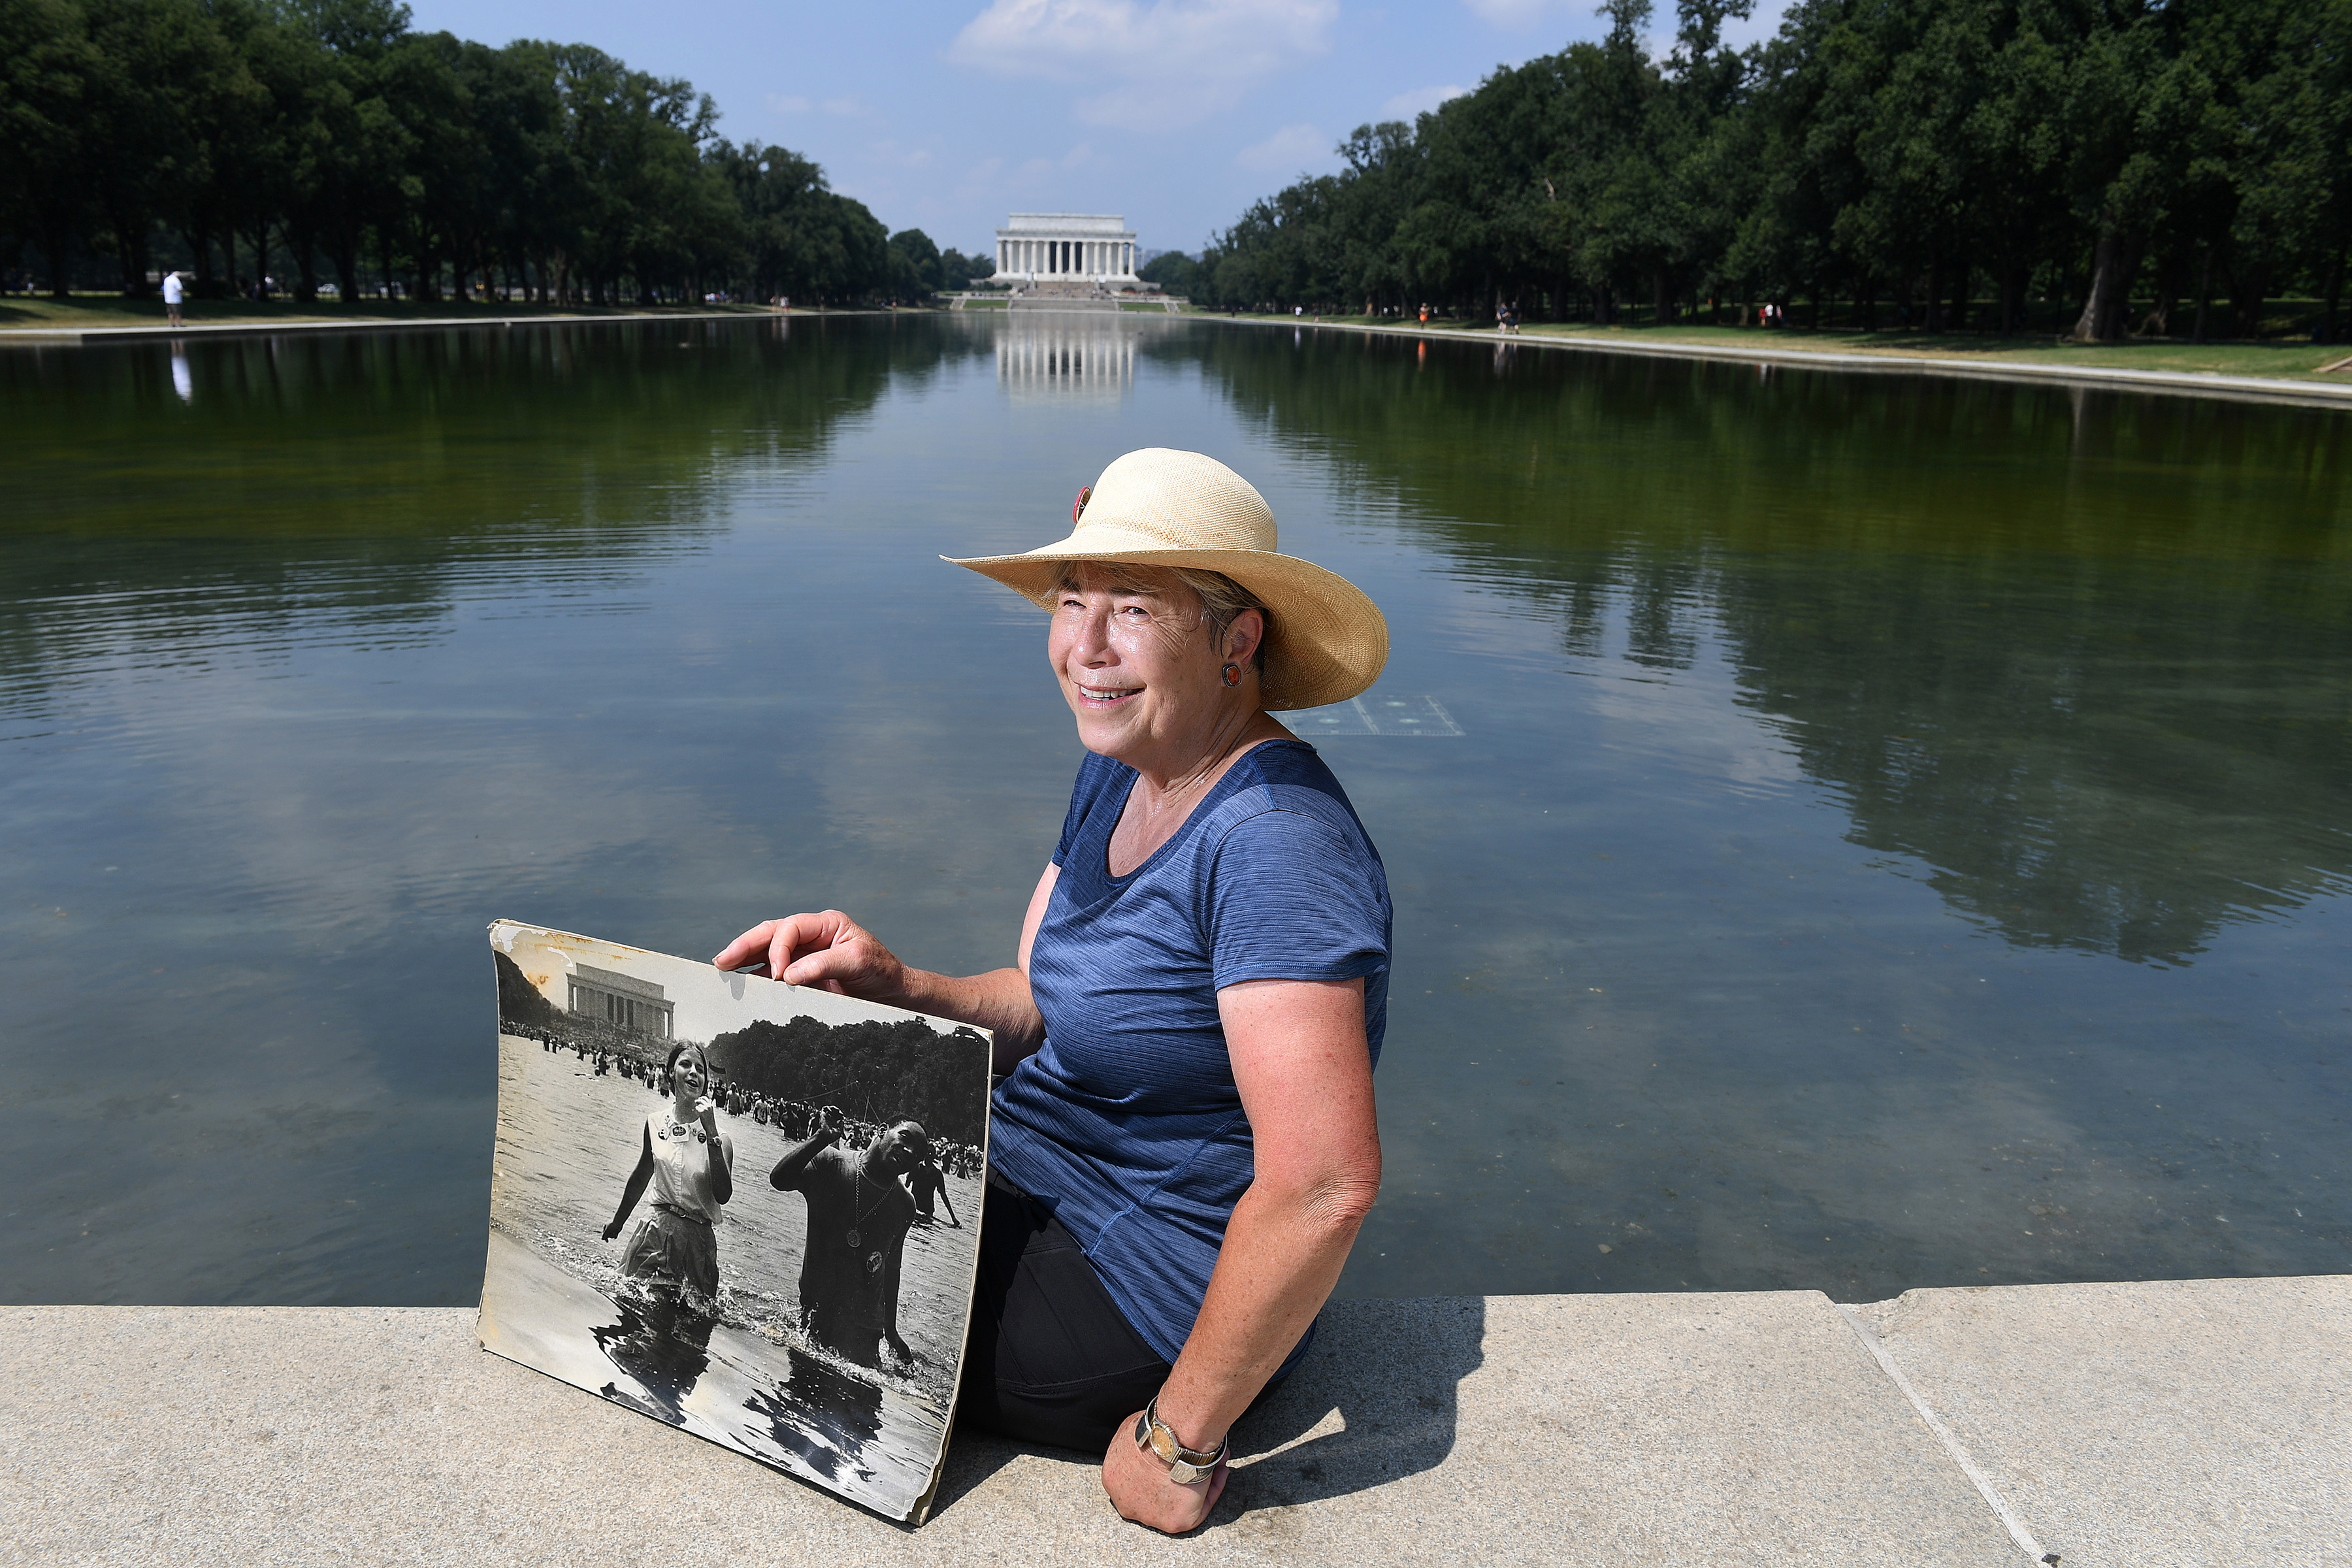 Michele Leimomi Sing Holzman at the Lincoln Memorial Reflecting Pool. Holzman was the subject of a photograph taken by Richard Bensinger at the Lincoln Memorial Reflecting Pool in 1968. She is holding a copy of the original photo. MUST CREDIT: Washington Post photo by Matt McClain